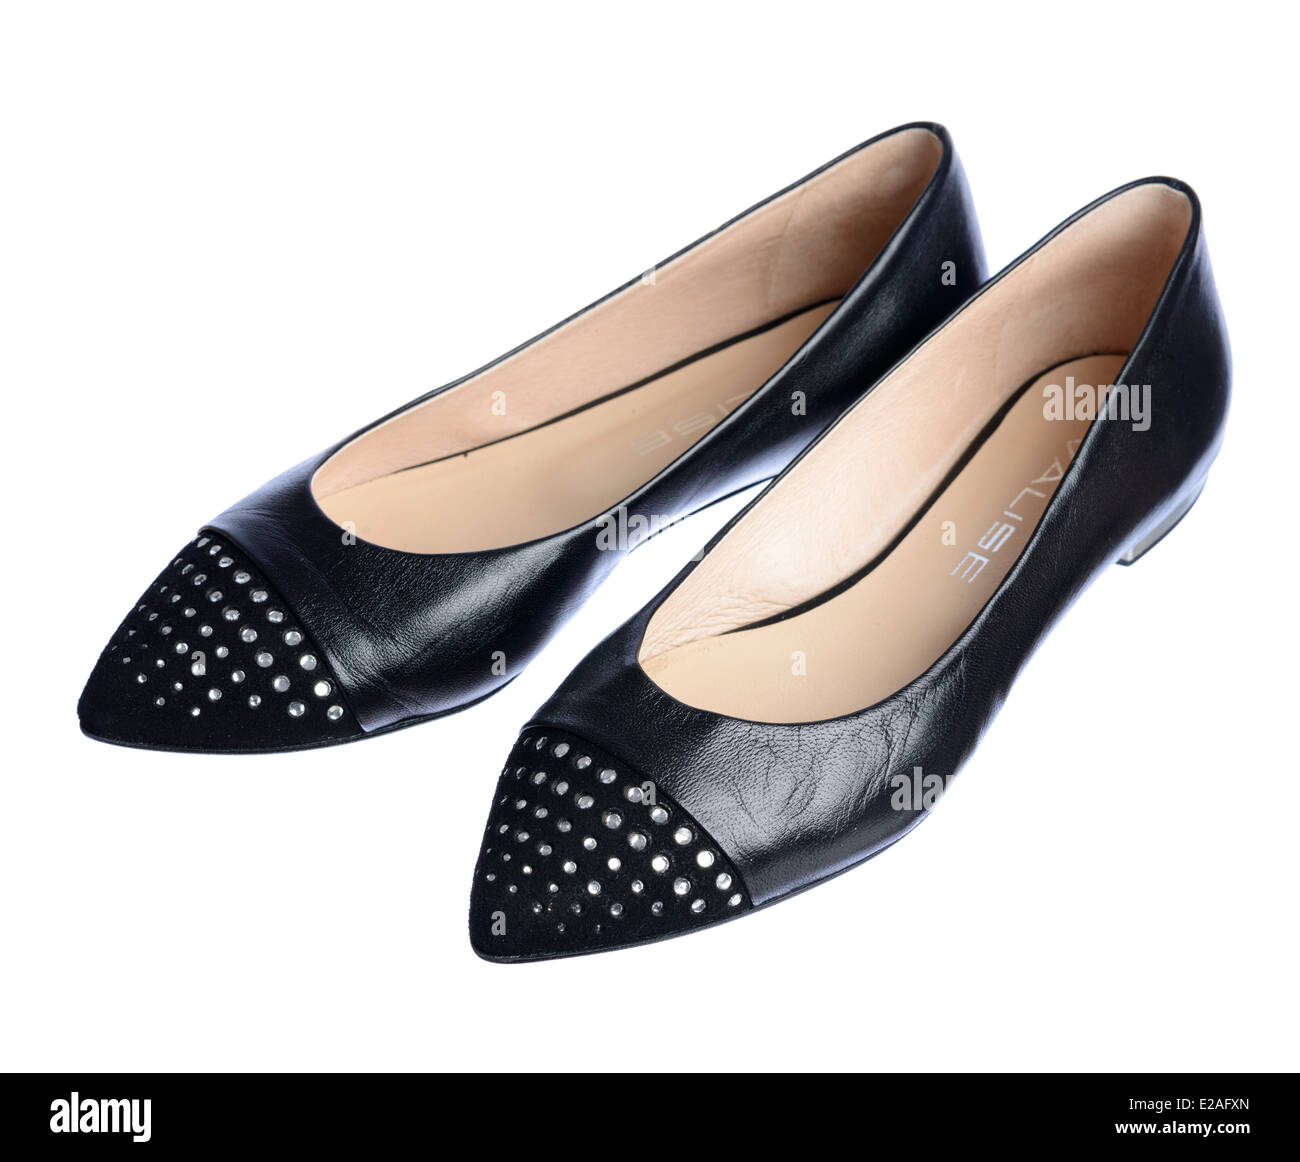 4343d7db8 Pair of black leather flat shoes isolated on white background - Stock Image